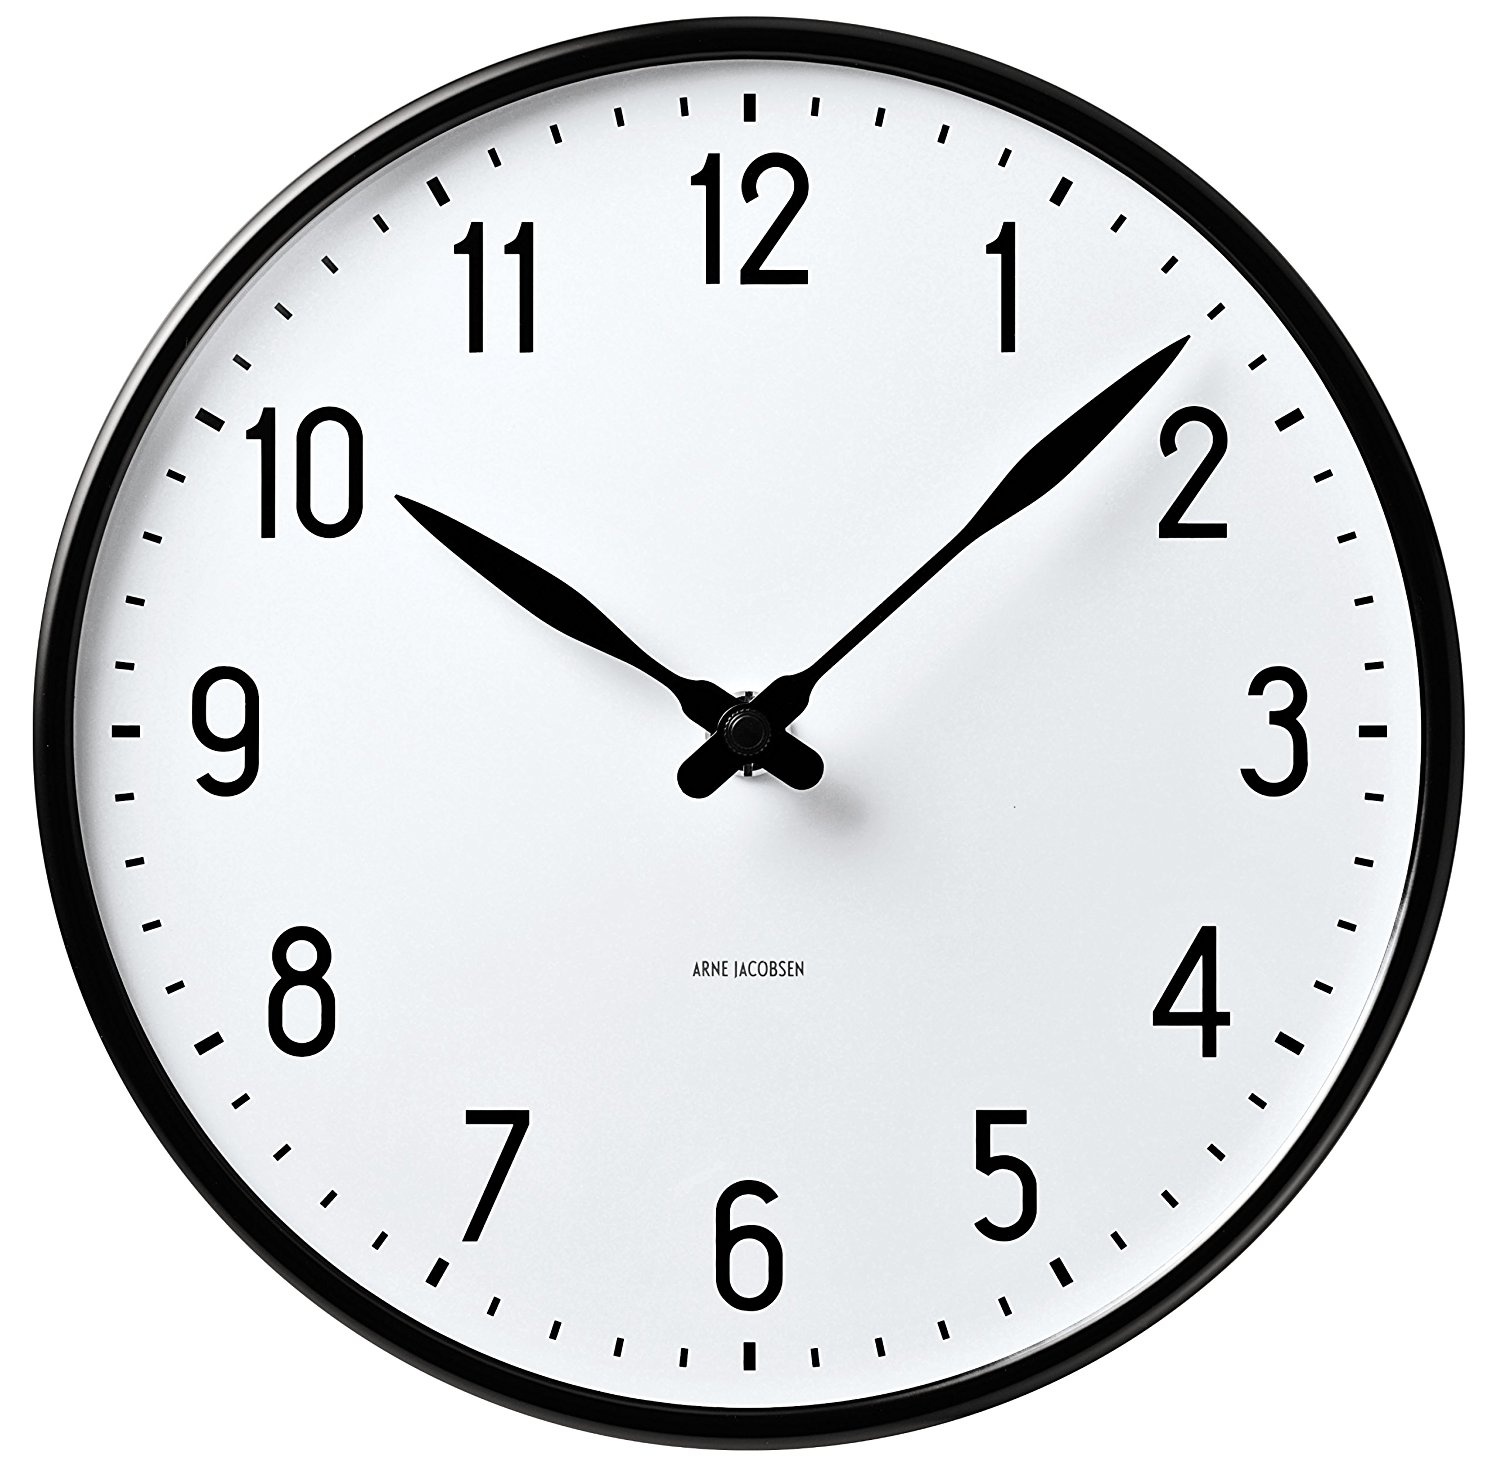 Amazon.com: ARNE JACOBSEN STATION WALL CLOCK 290 43643: Home & Kitchen